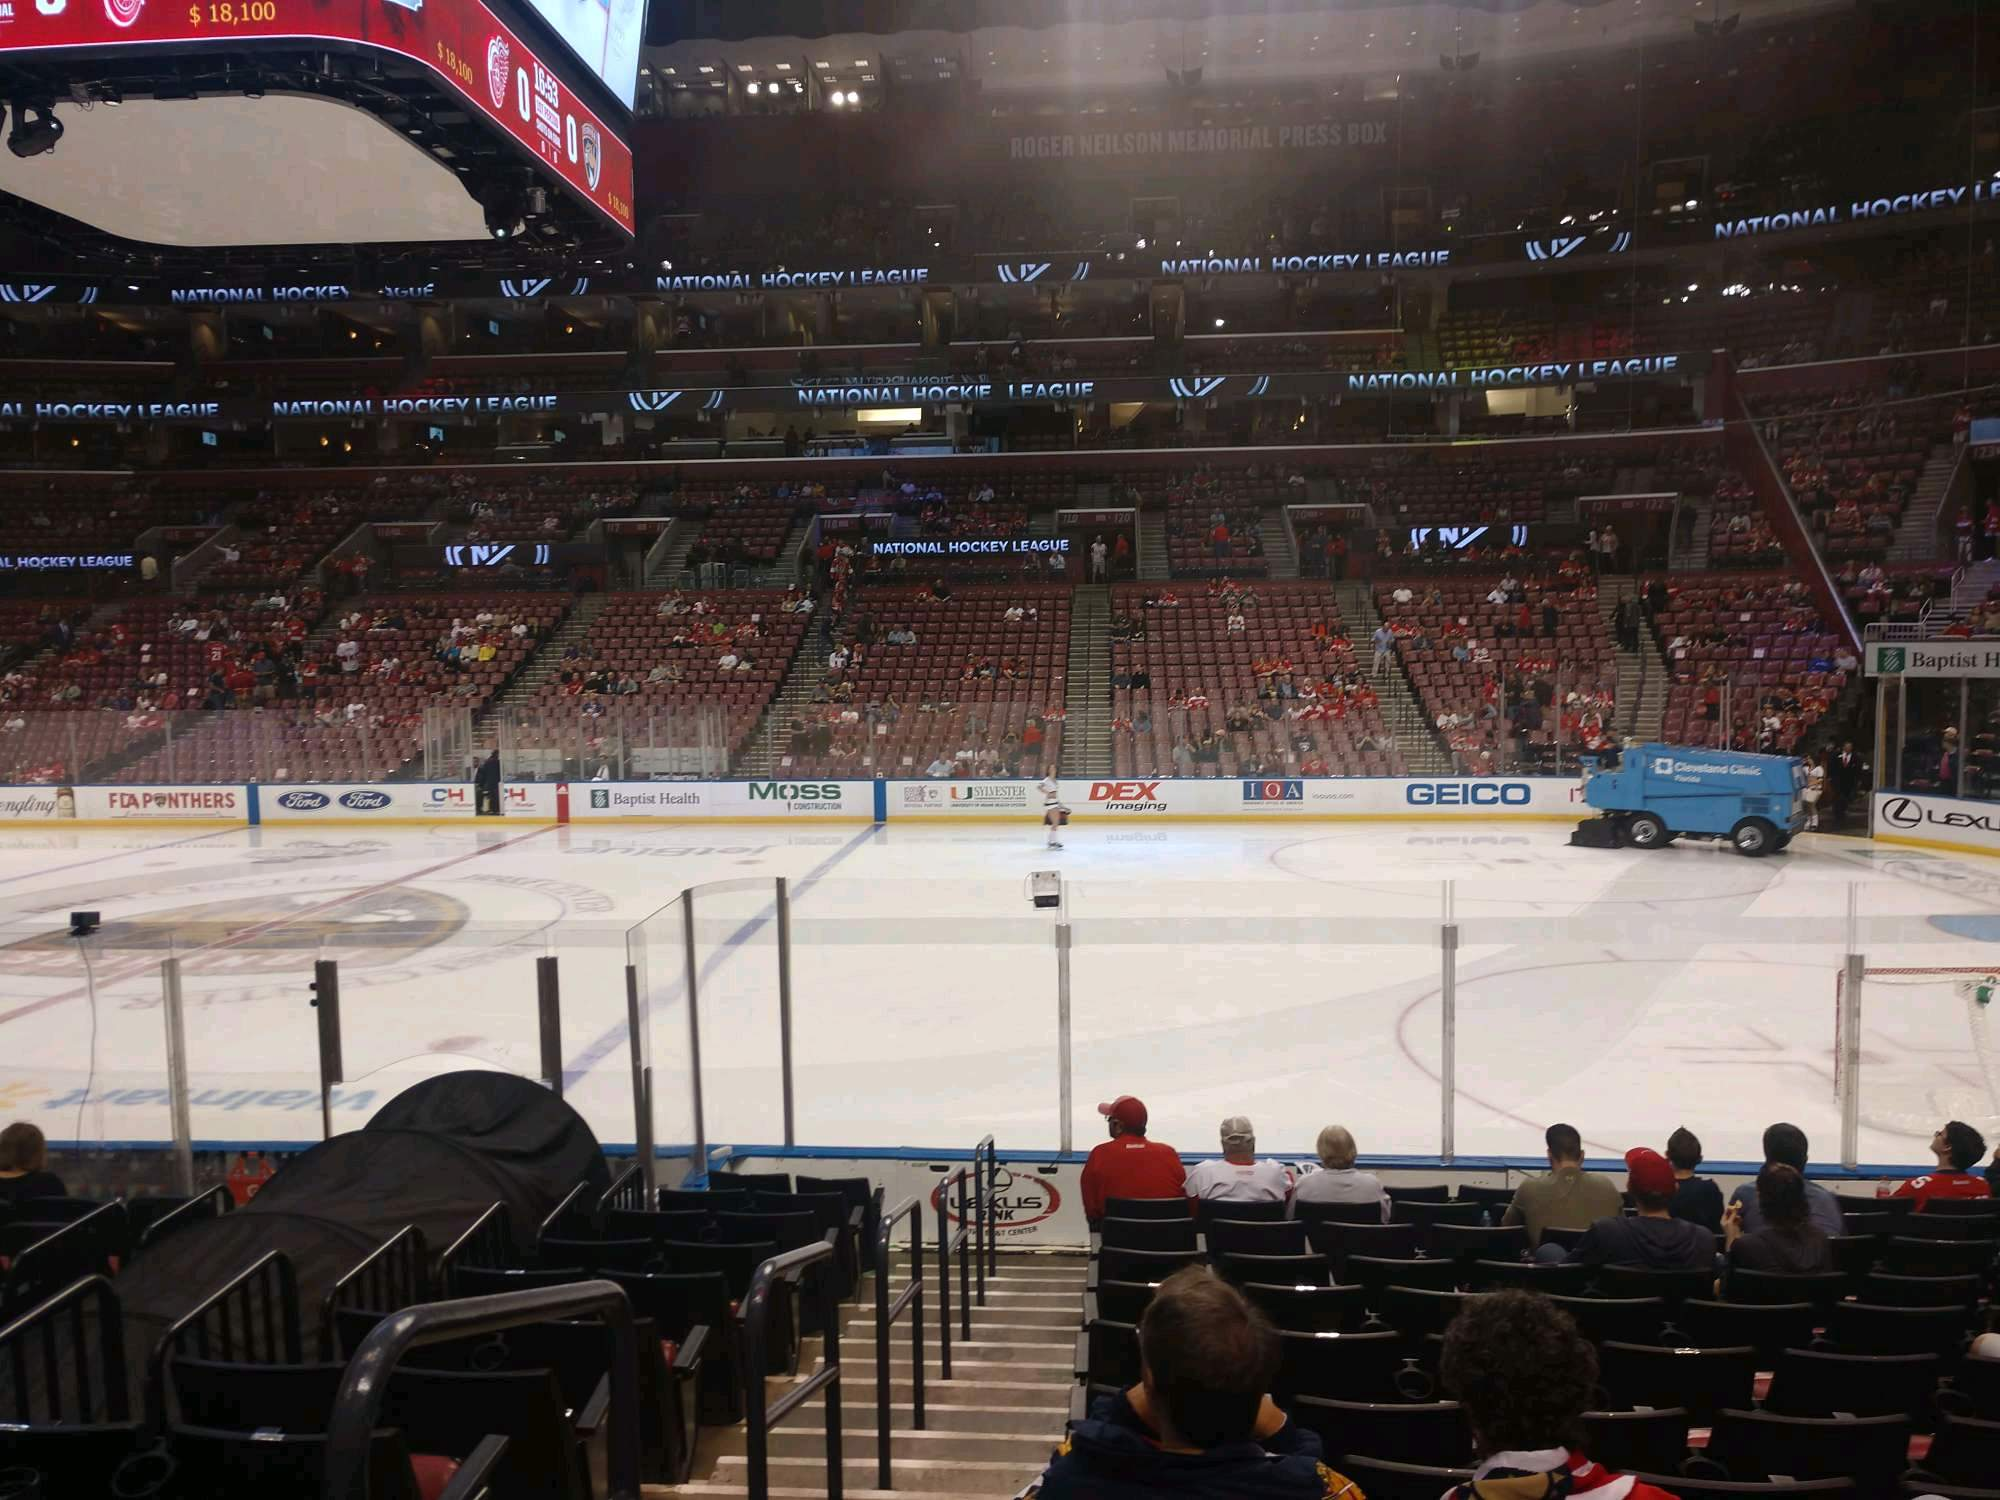 BB&T Center Section 133 Row 12 Seat 14